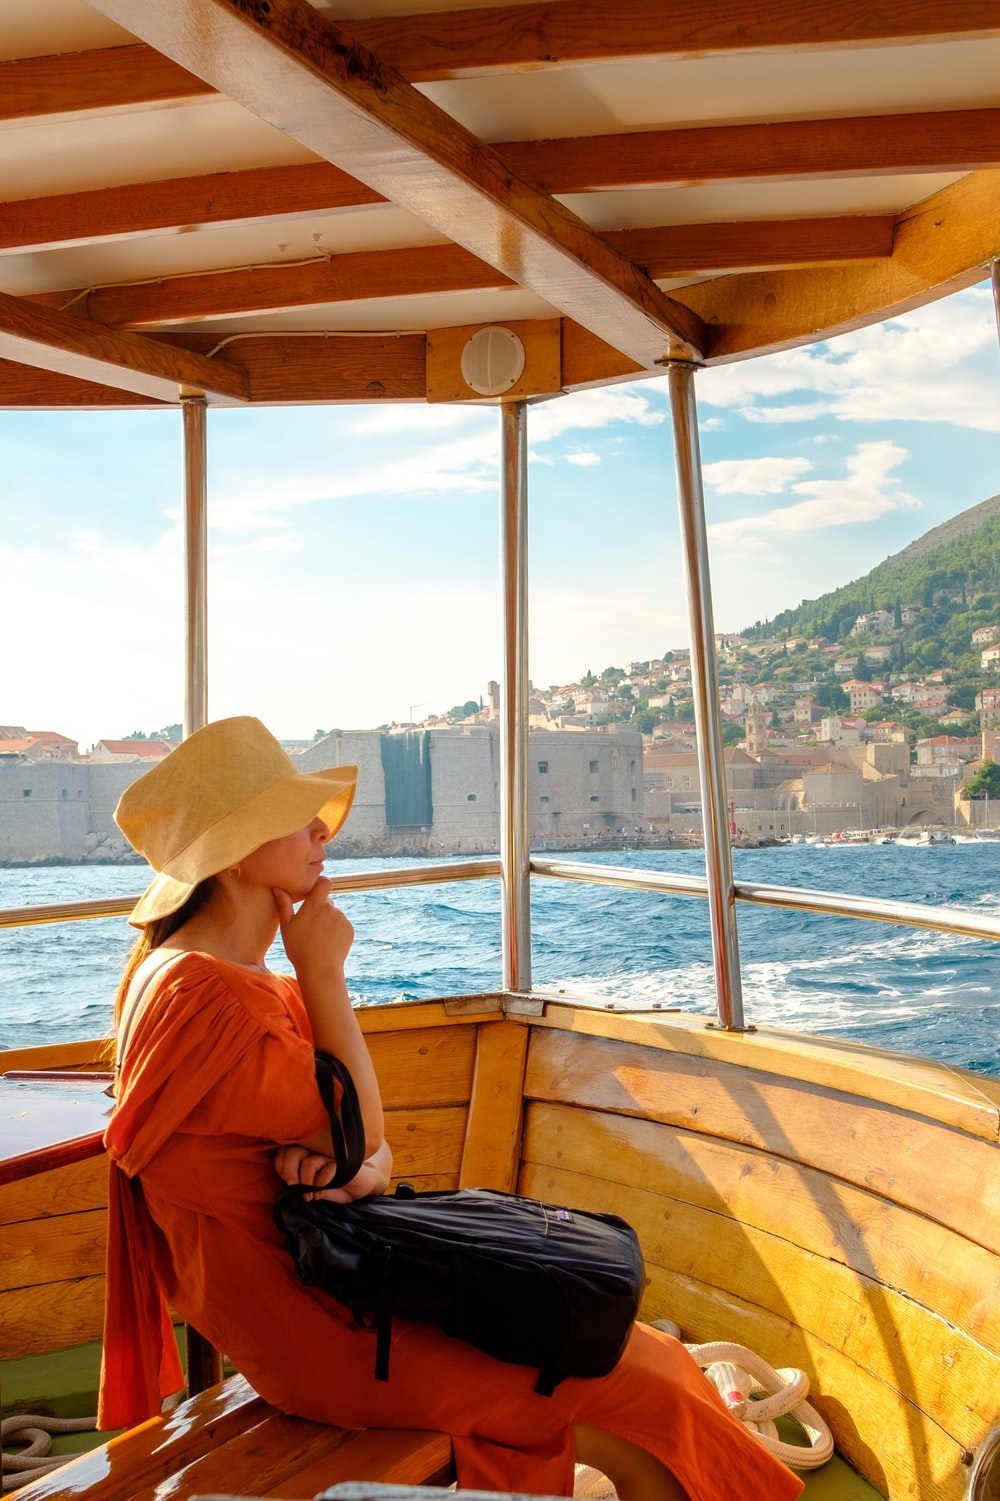 woman in brown sun hat sitting on brown wooden boat during daytime